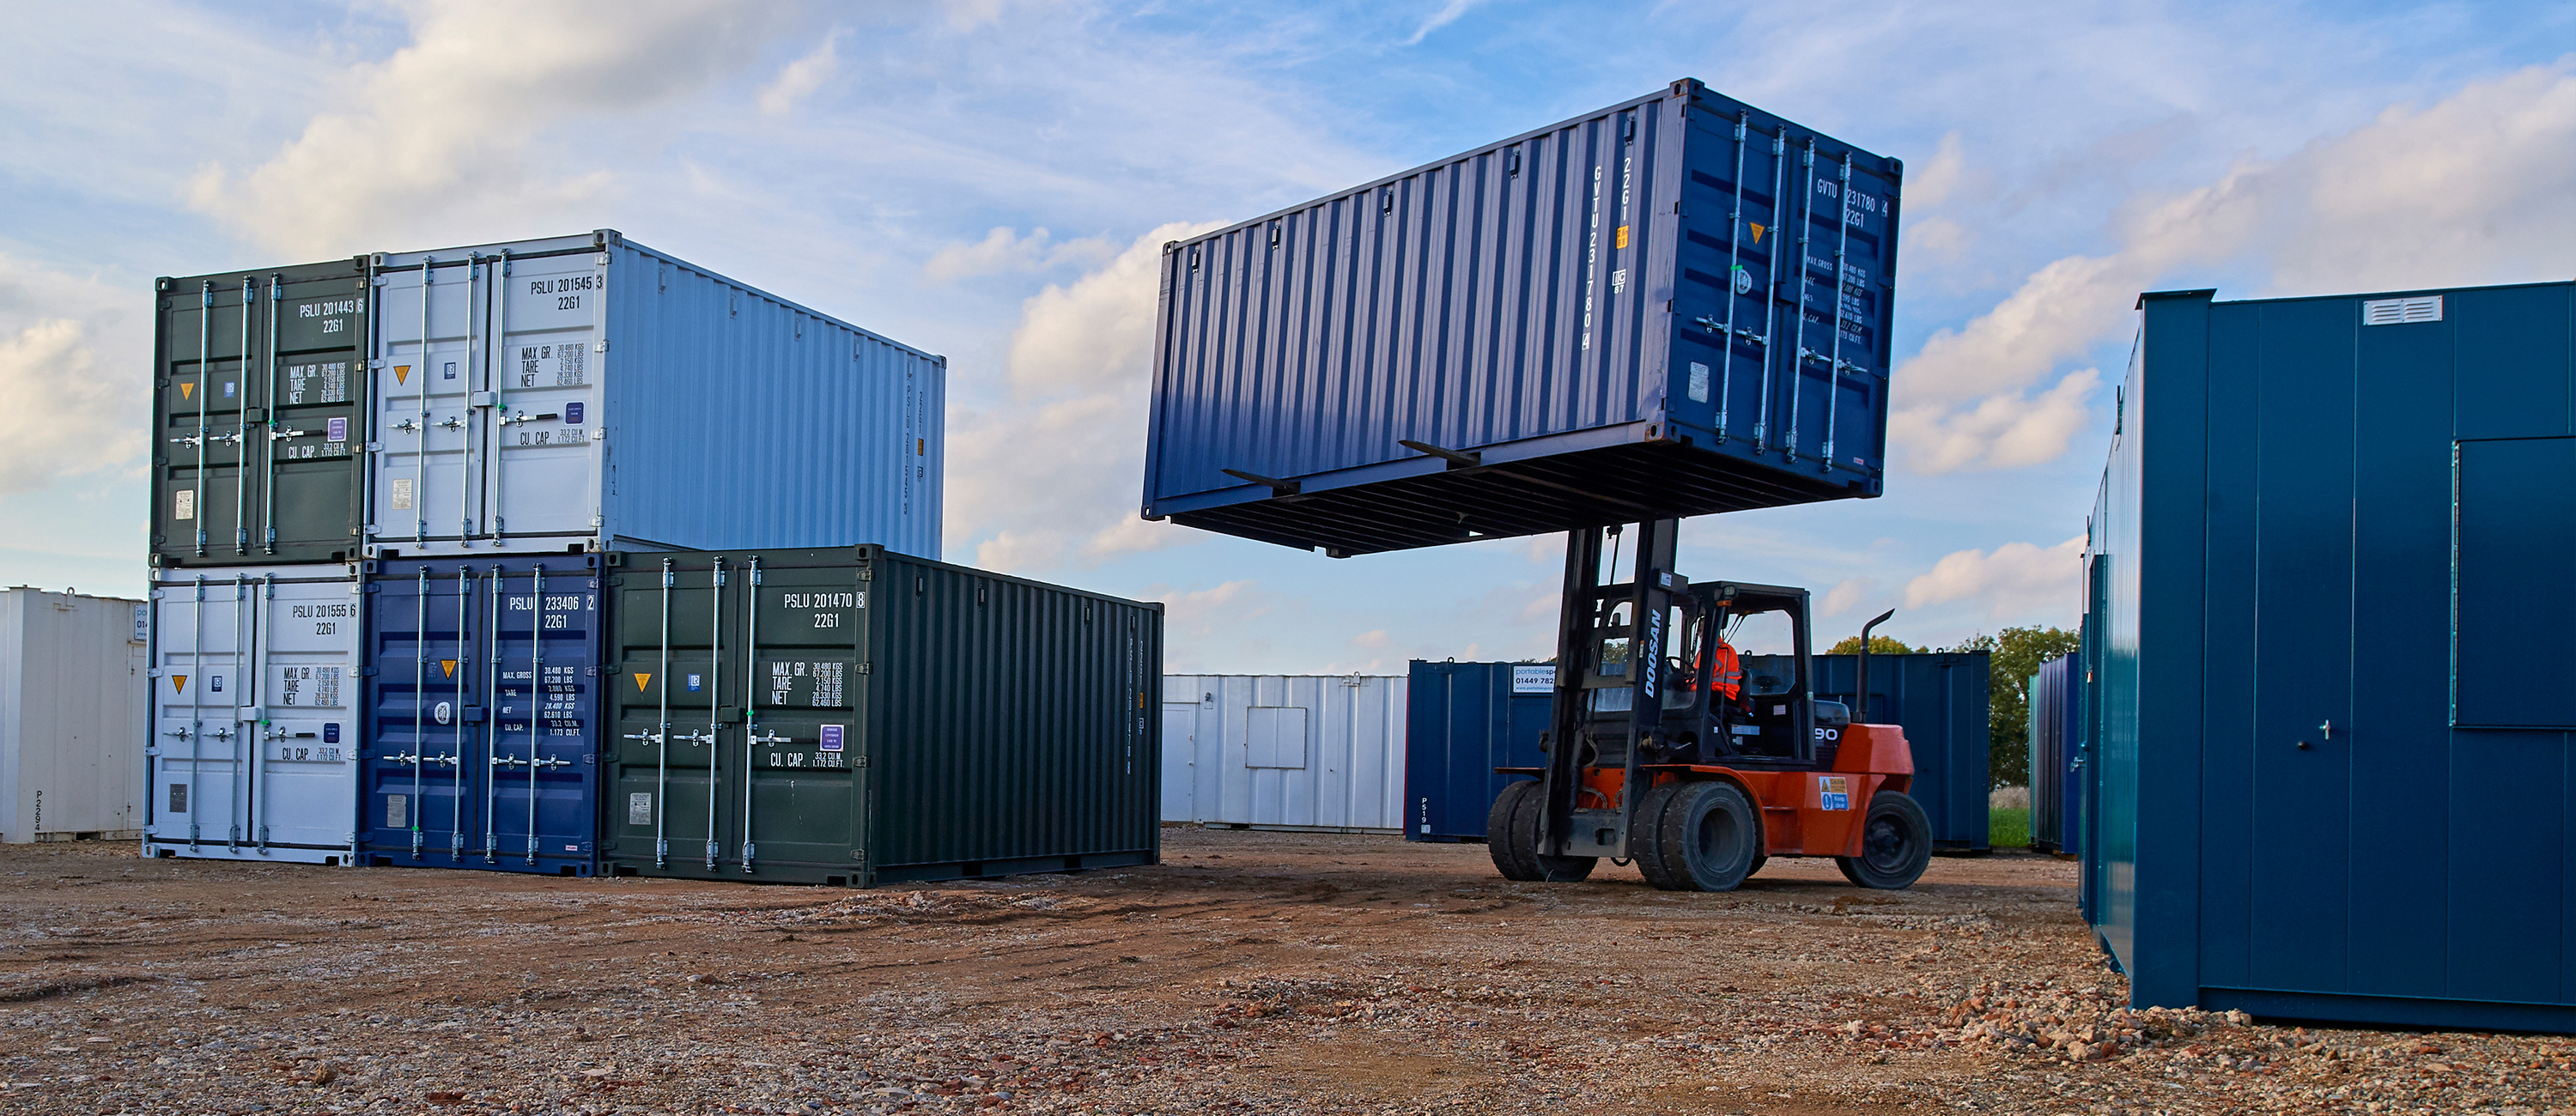 Container Hire - Shipping Container Hire UK | Portable Space